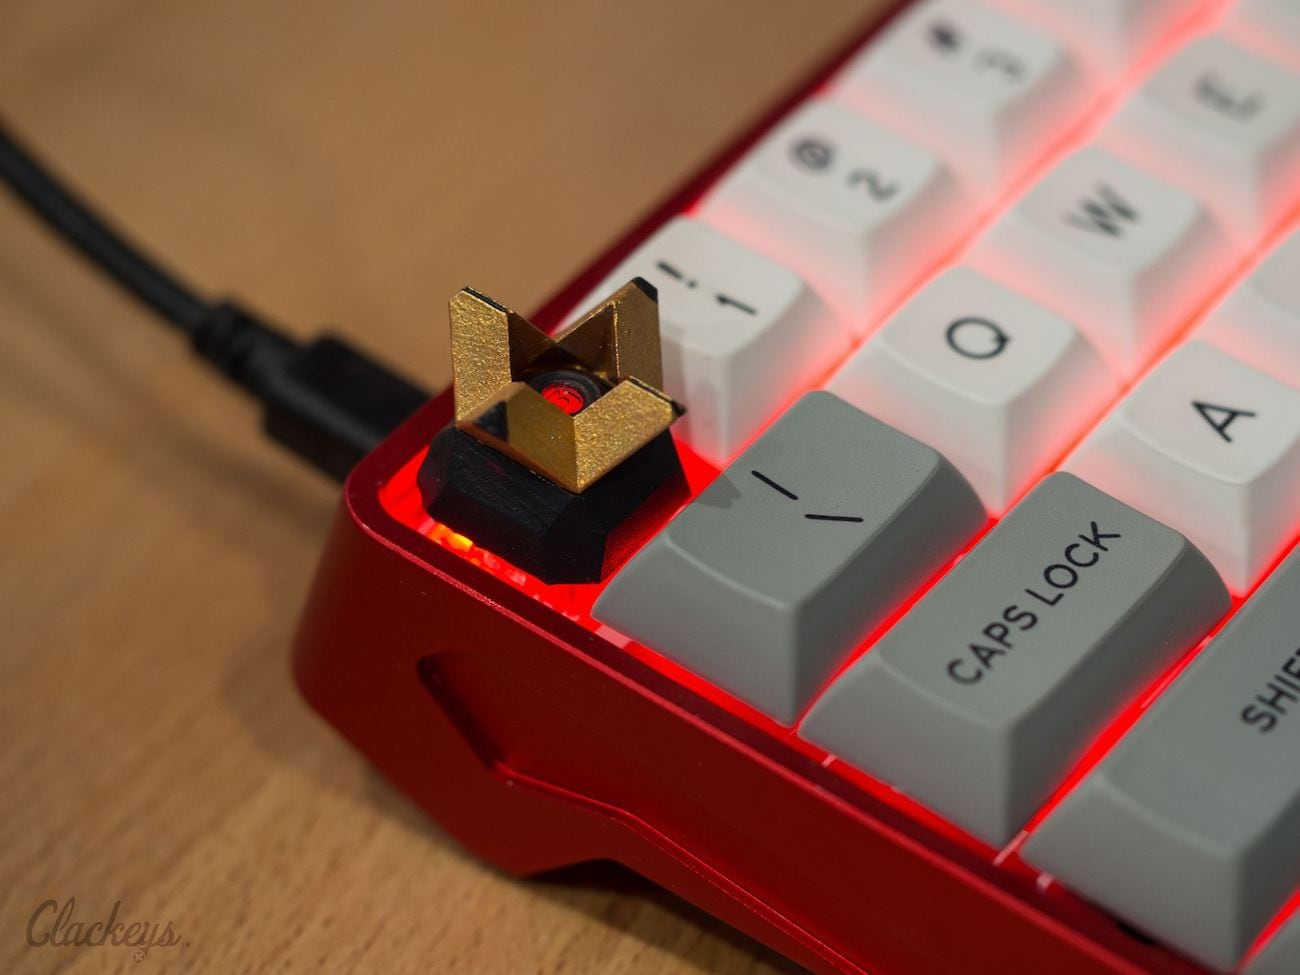 Clackeys Custom Designed Keycaps